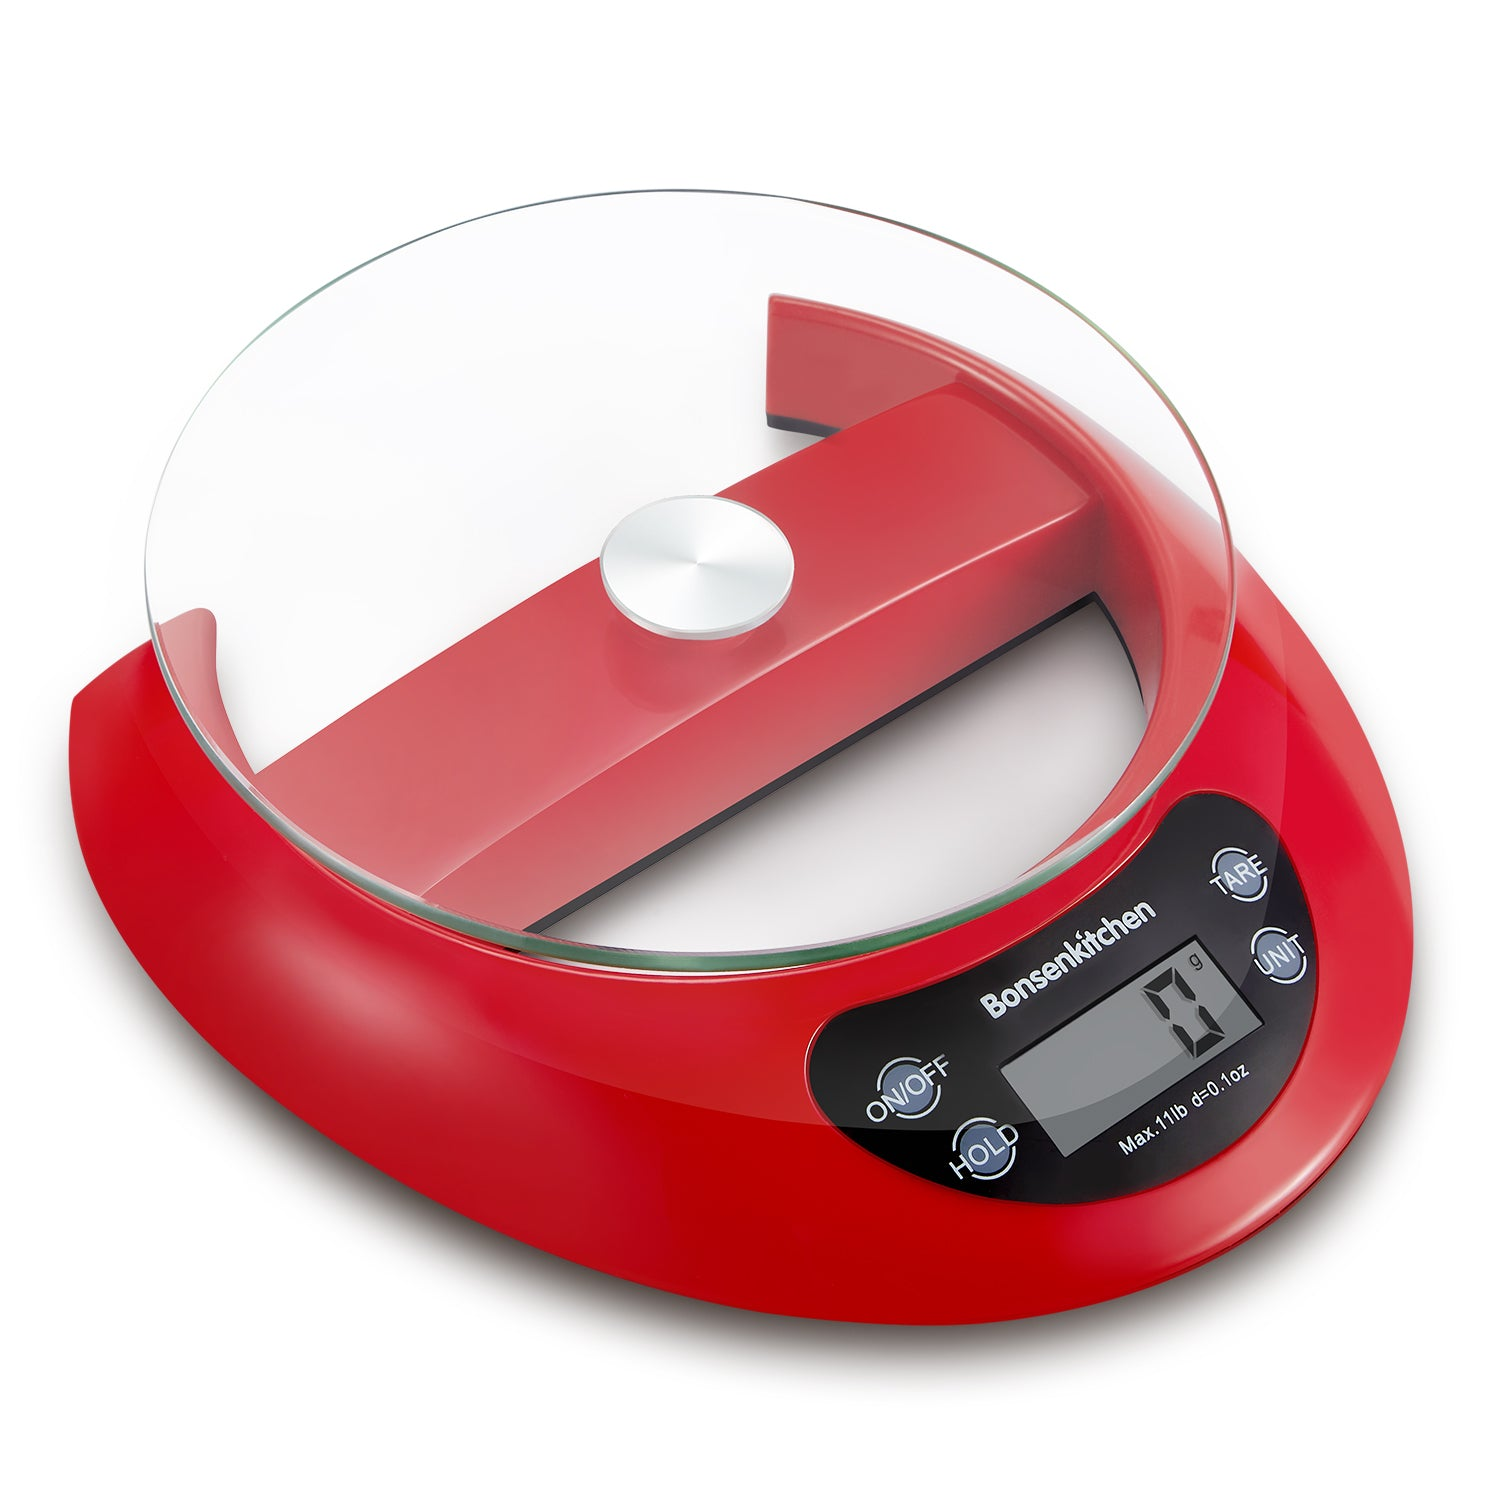 Bonsenkitchen Digital Kitchen Food Scales with Detachable Glass Tray